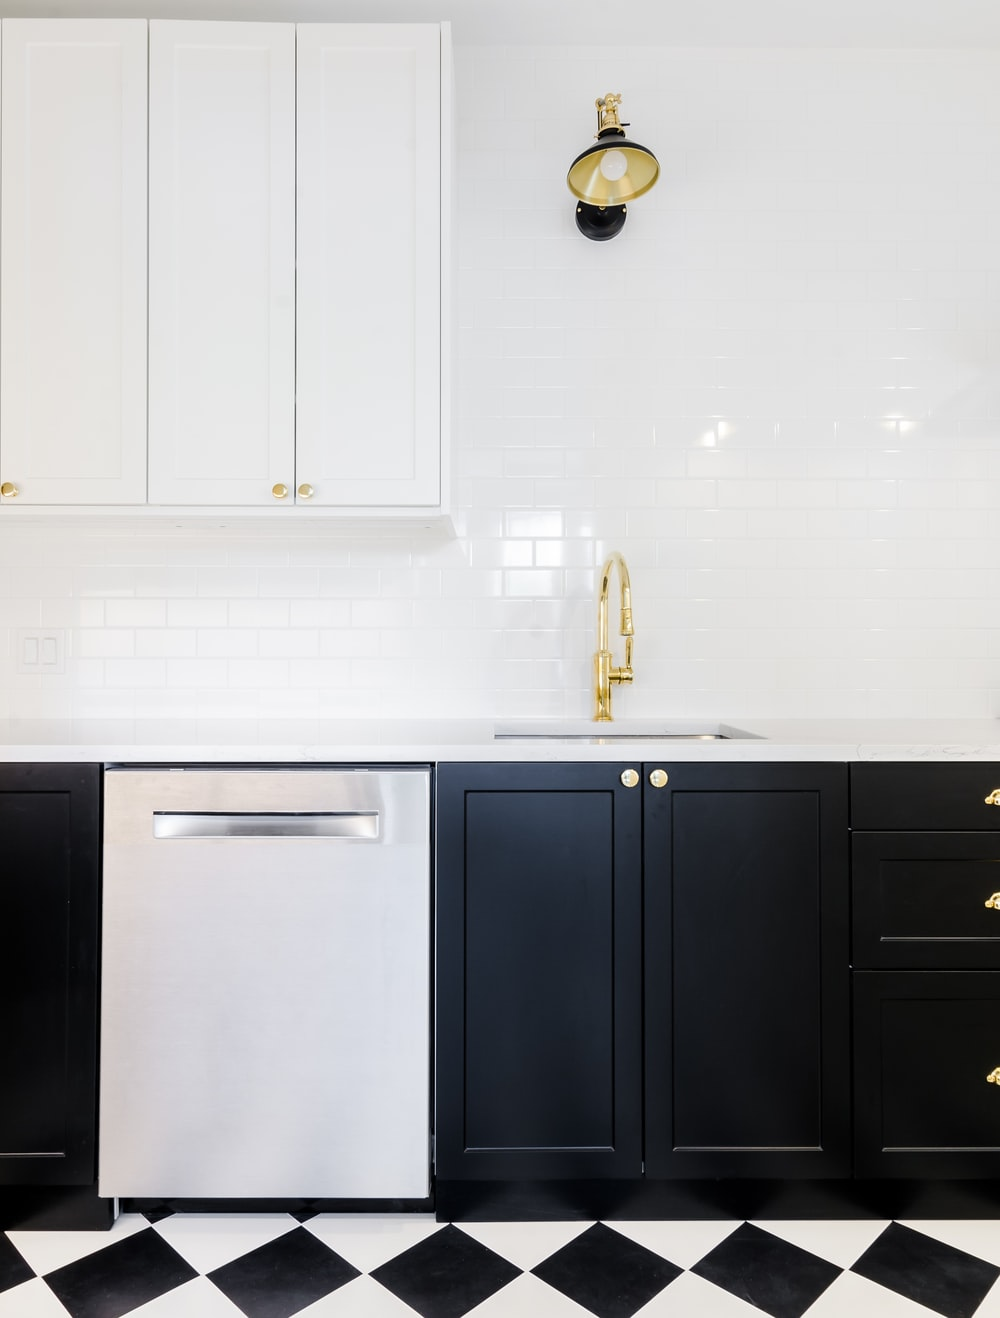 white wooden cabinet beside white wall